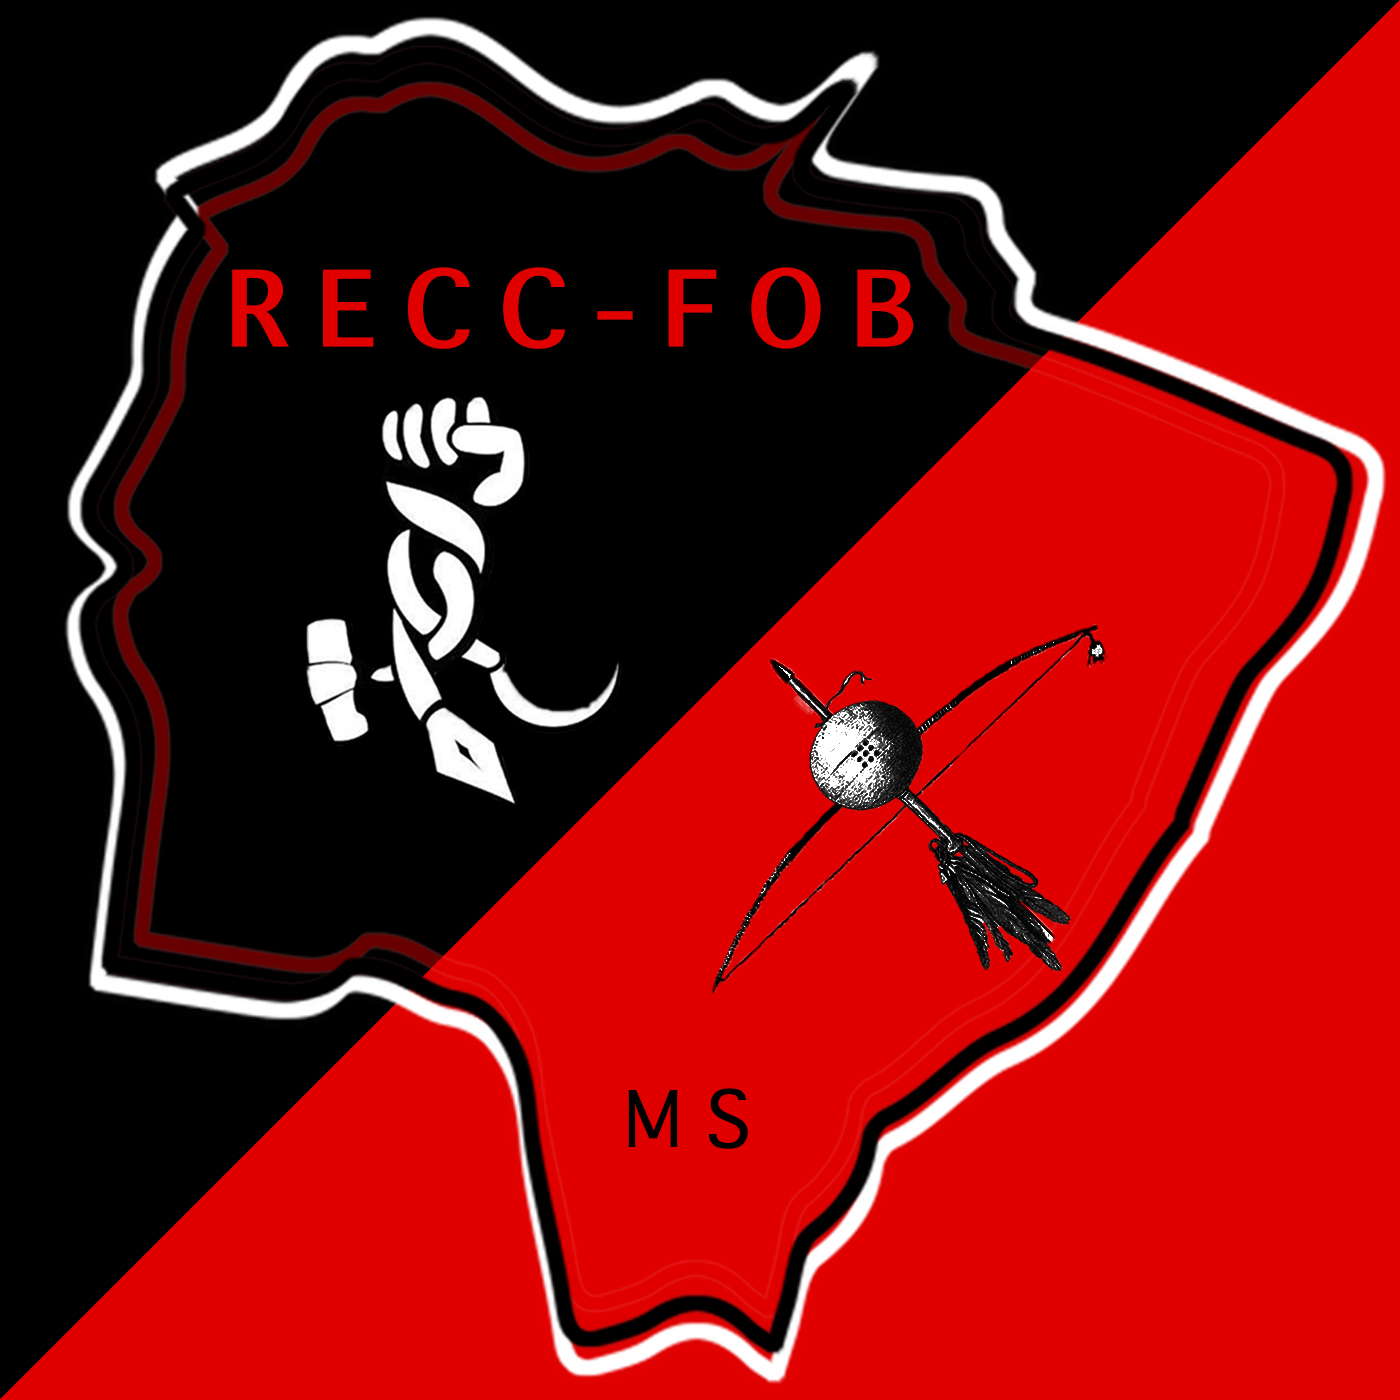 FOB&RECC_MS